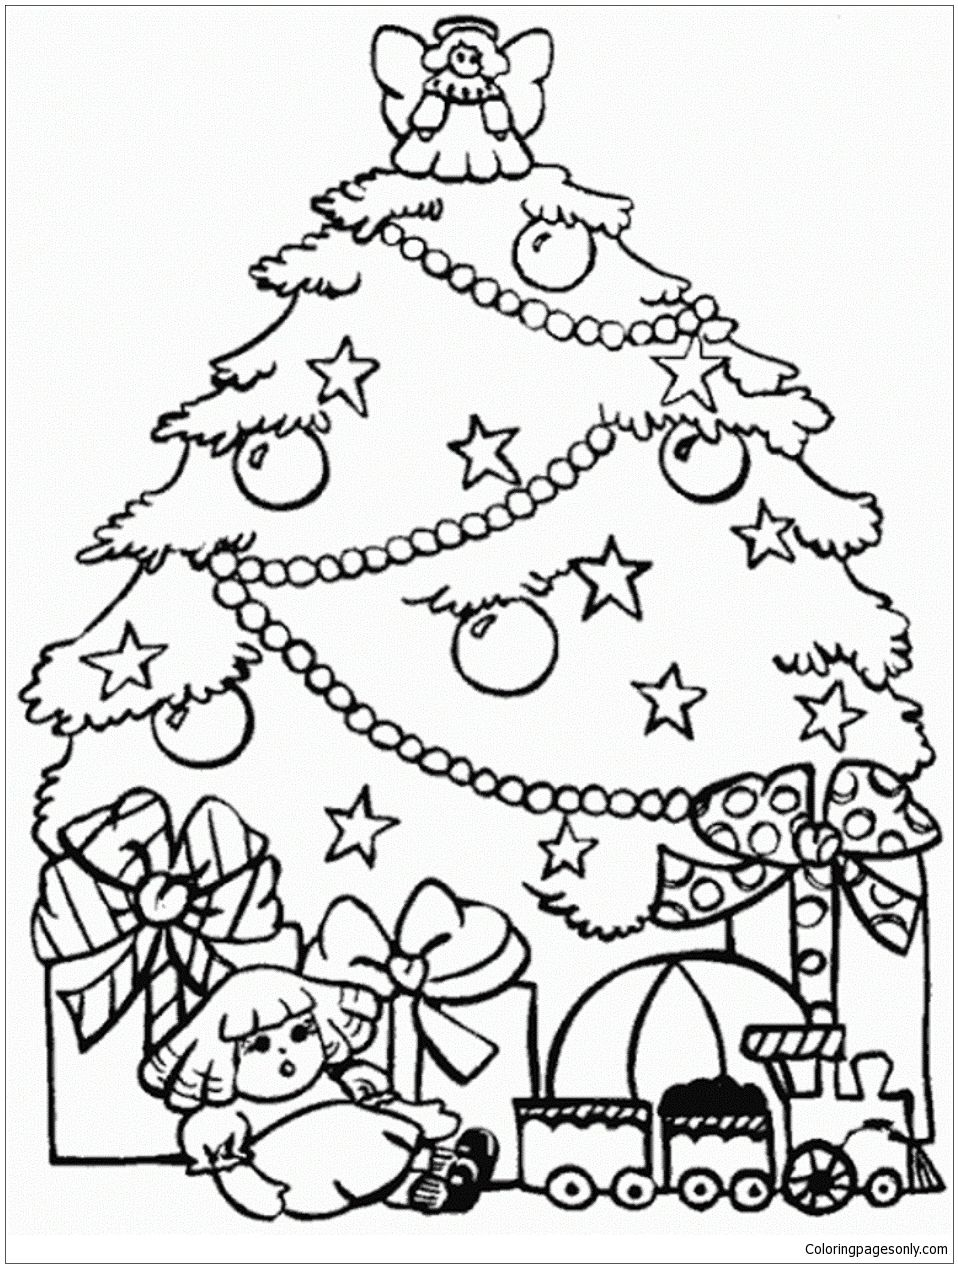 Presents And Christmas Tree Coloring Page Tree Coloring Page Christmas Tree Coloring Page Christmas Coloring Pages